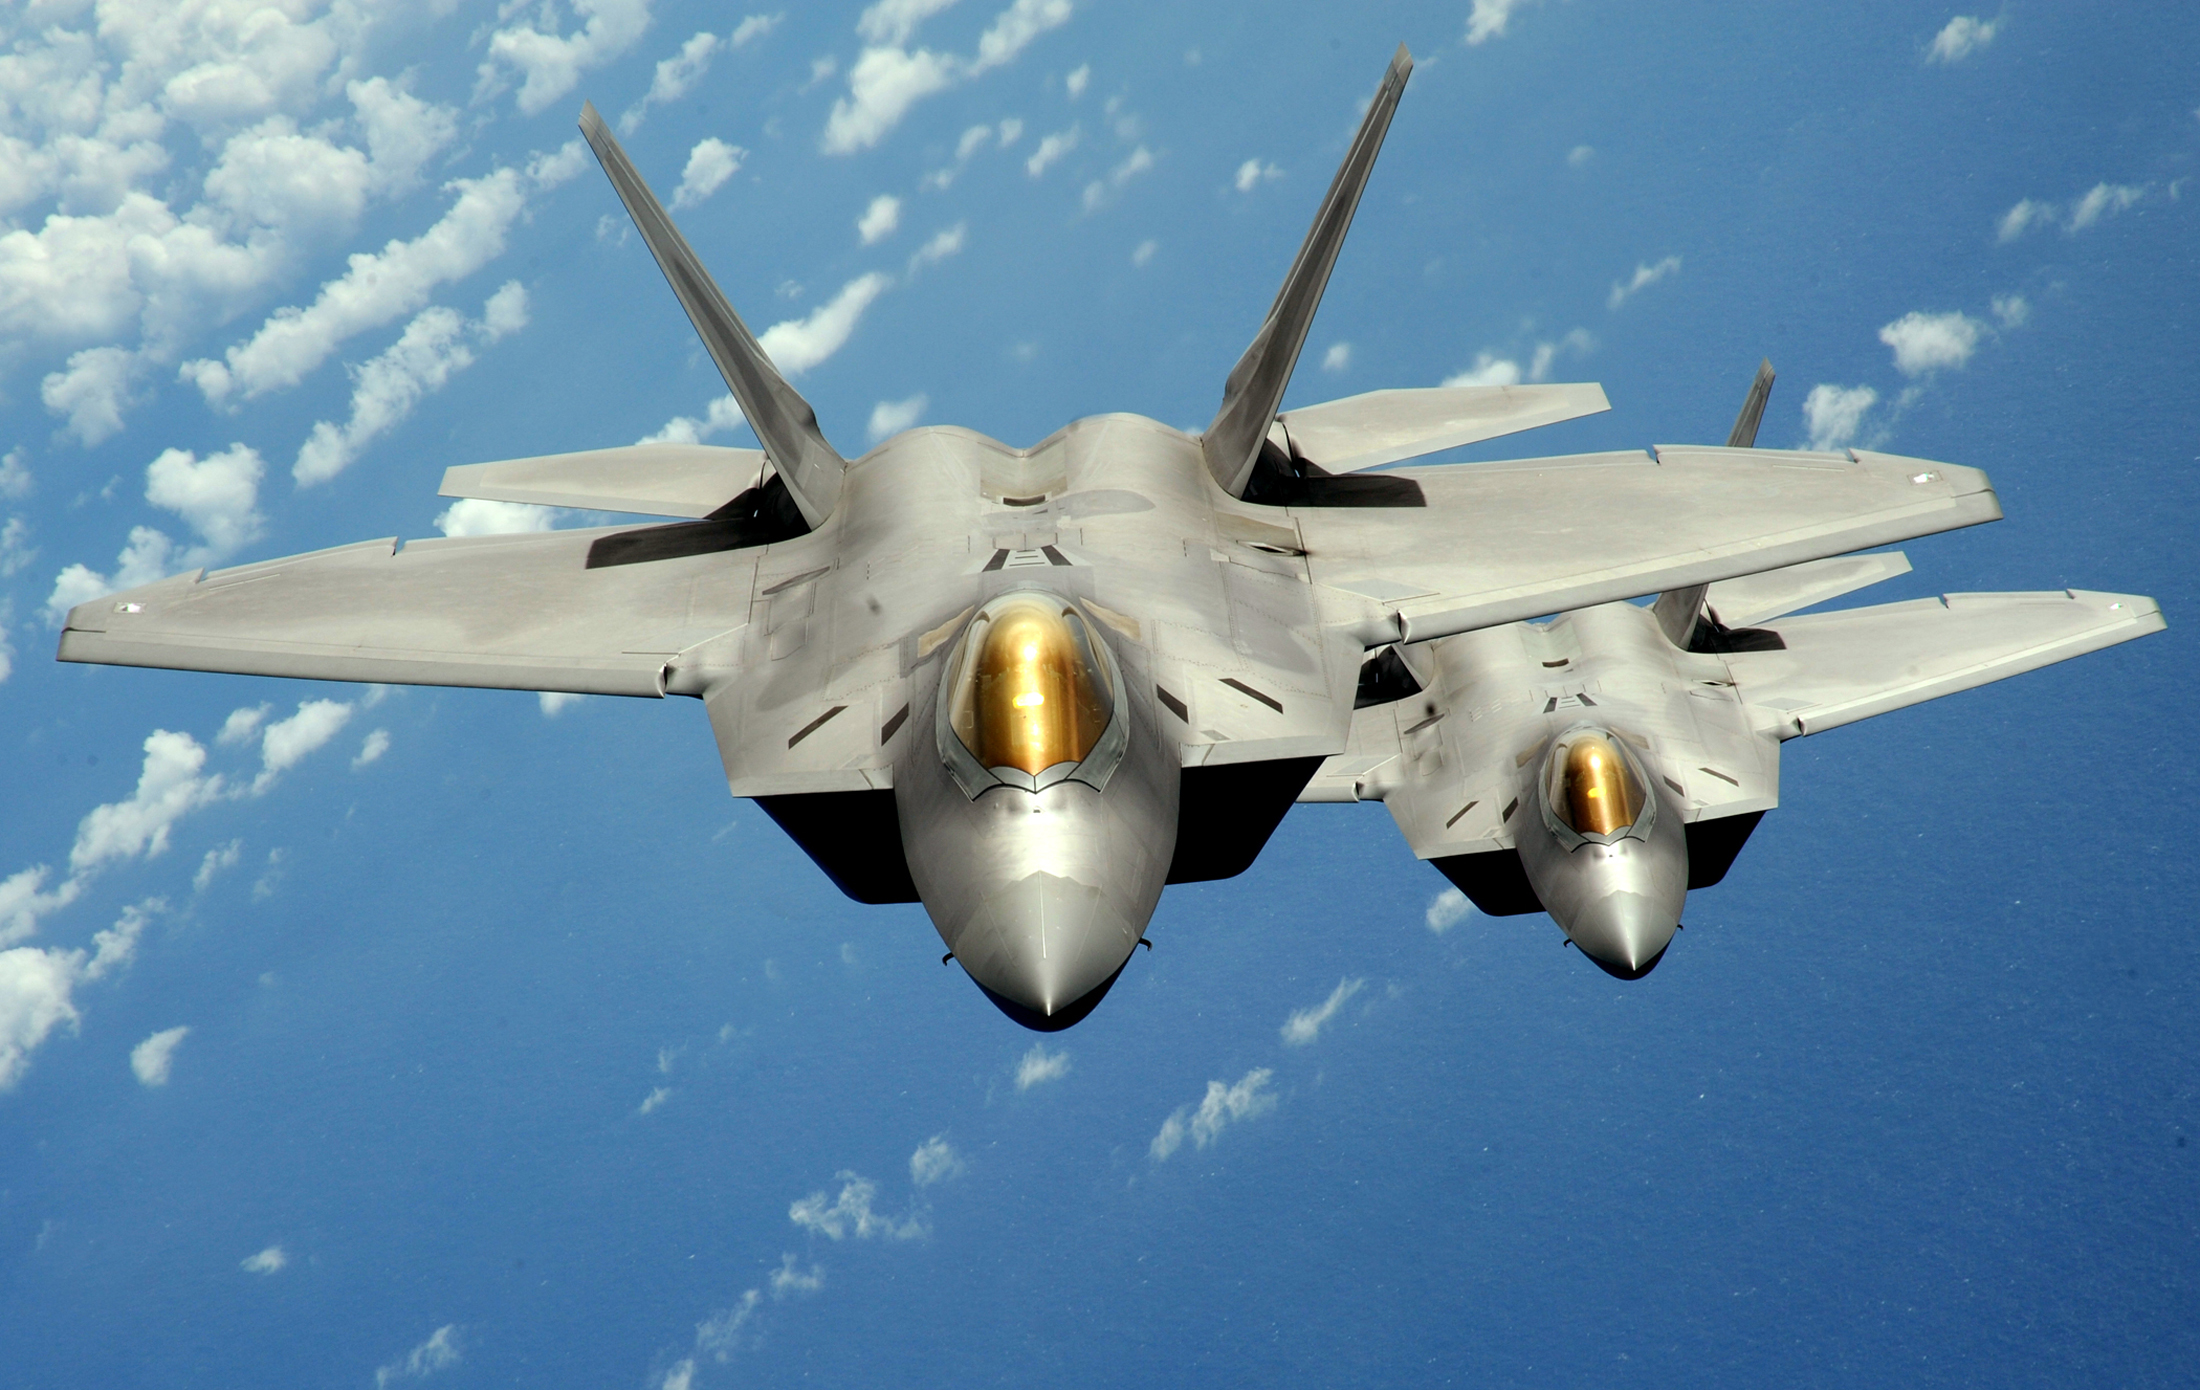 Two U.S. Air Force F-22 Raptor stealth jet fighters fly near Andersen Air Force Base in this handout photo dated Aug. 4, 2010.